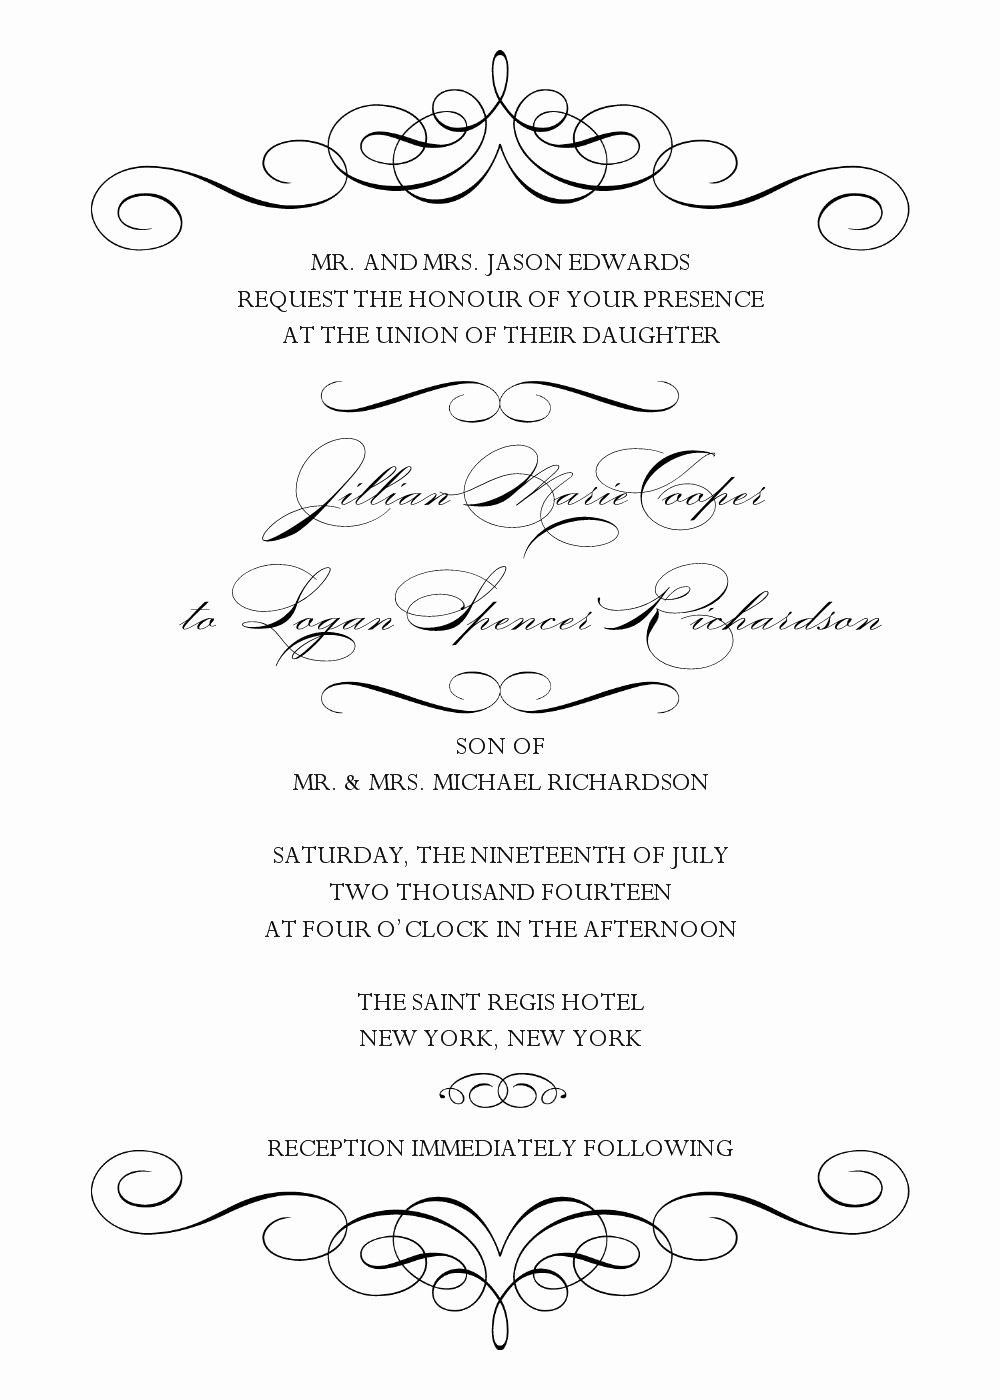 Word Wedding Invitation Template Best Of Wedding Invitation Wedding Invitation Templates Word